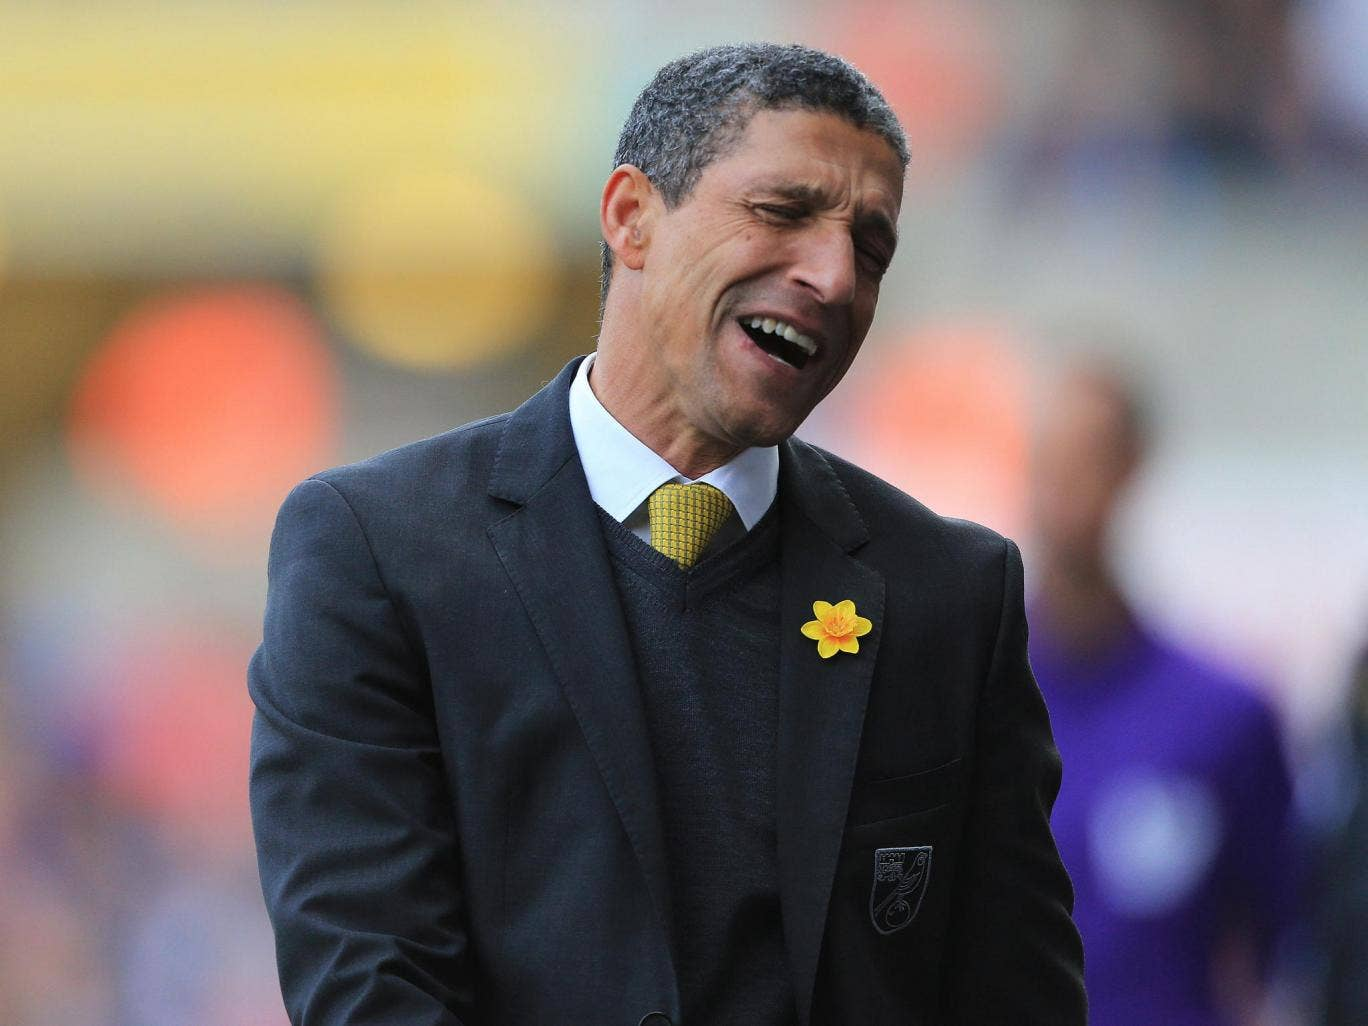 Some Norwich City fans believe that the dismissal of Chris Hughton was a necessary act to give the club a chance of avoiding relegation